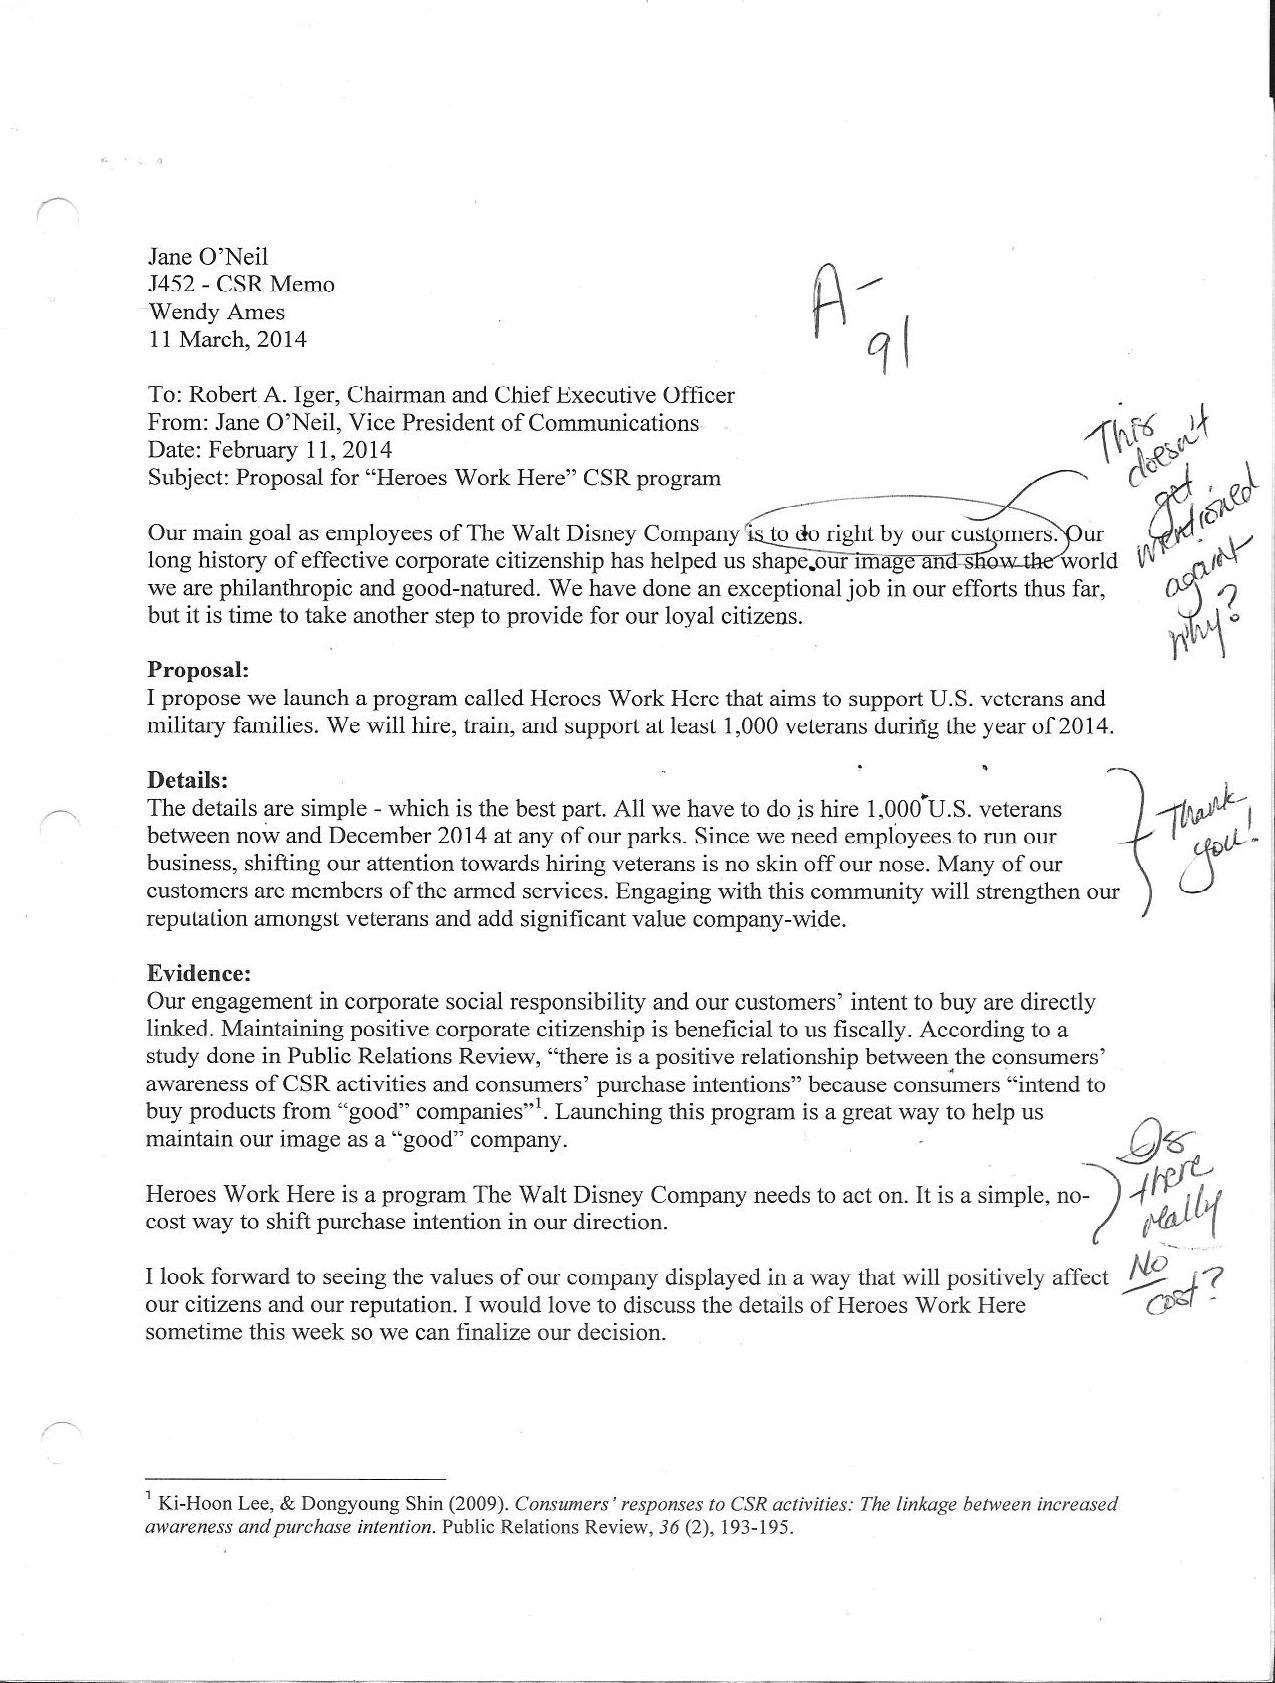 Writing A Case Study Organize Your Papers With Pro Help Student Work – Case Study 1 Csr Memo Borders No More